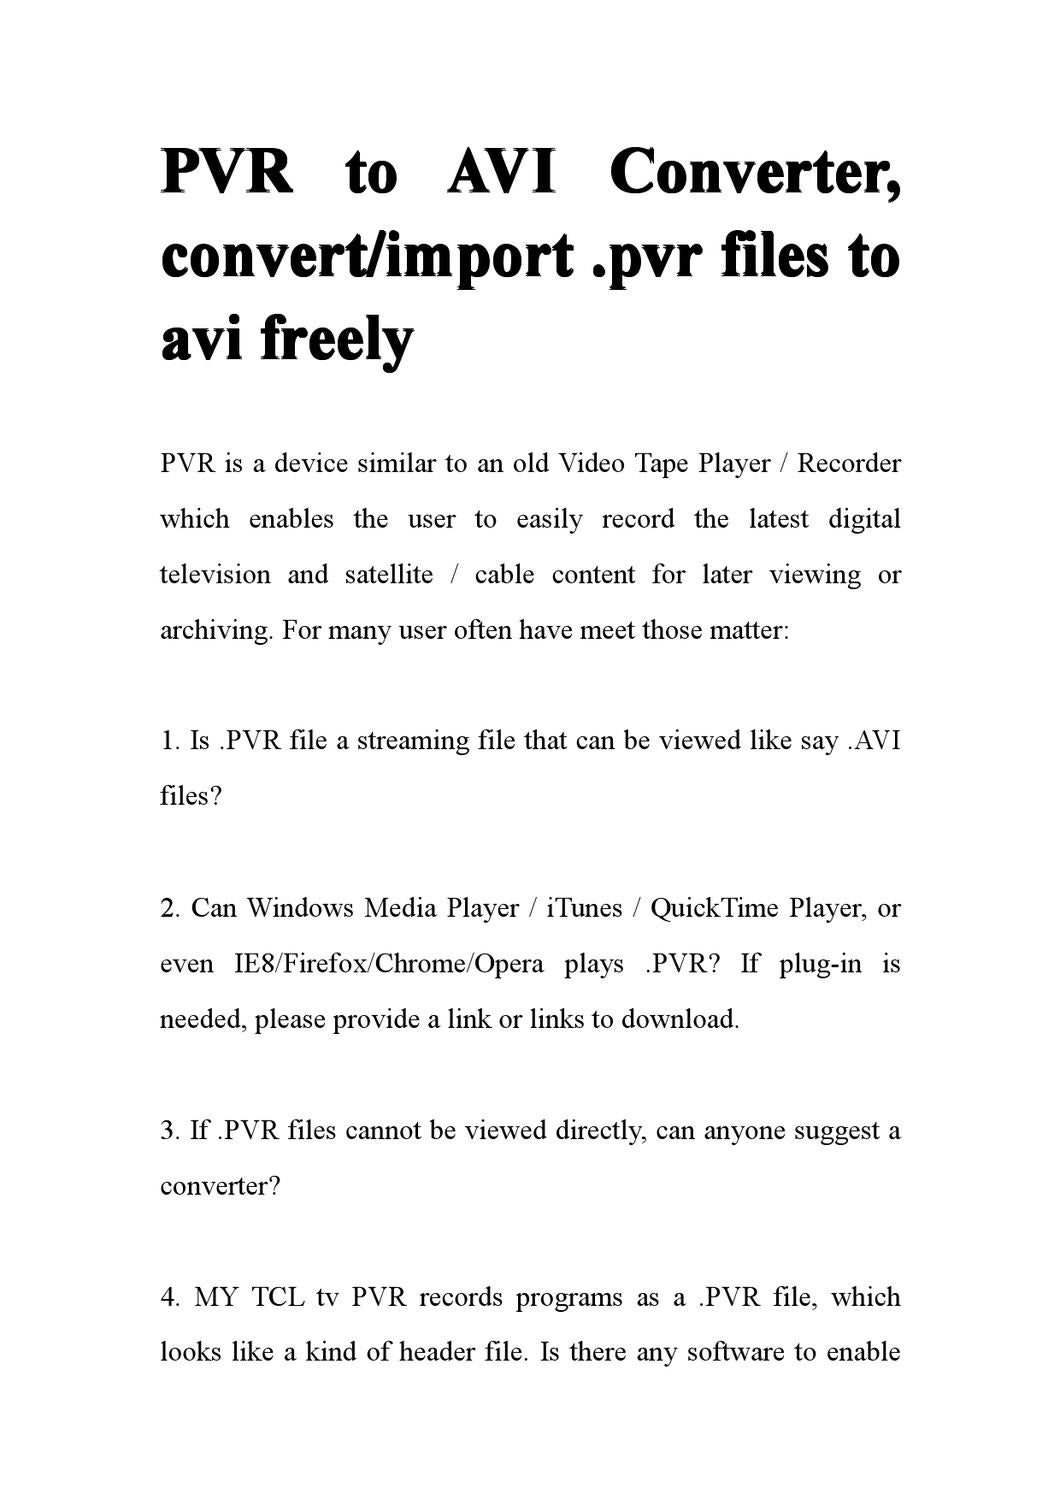 PVR to AVI Converter, convert/import  pvr files to avi